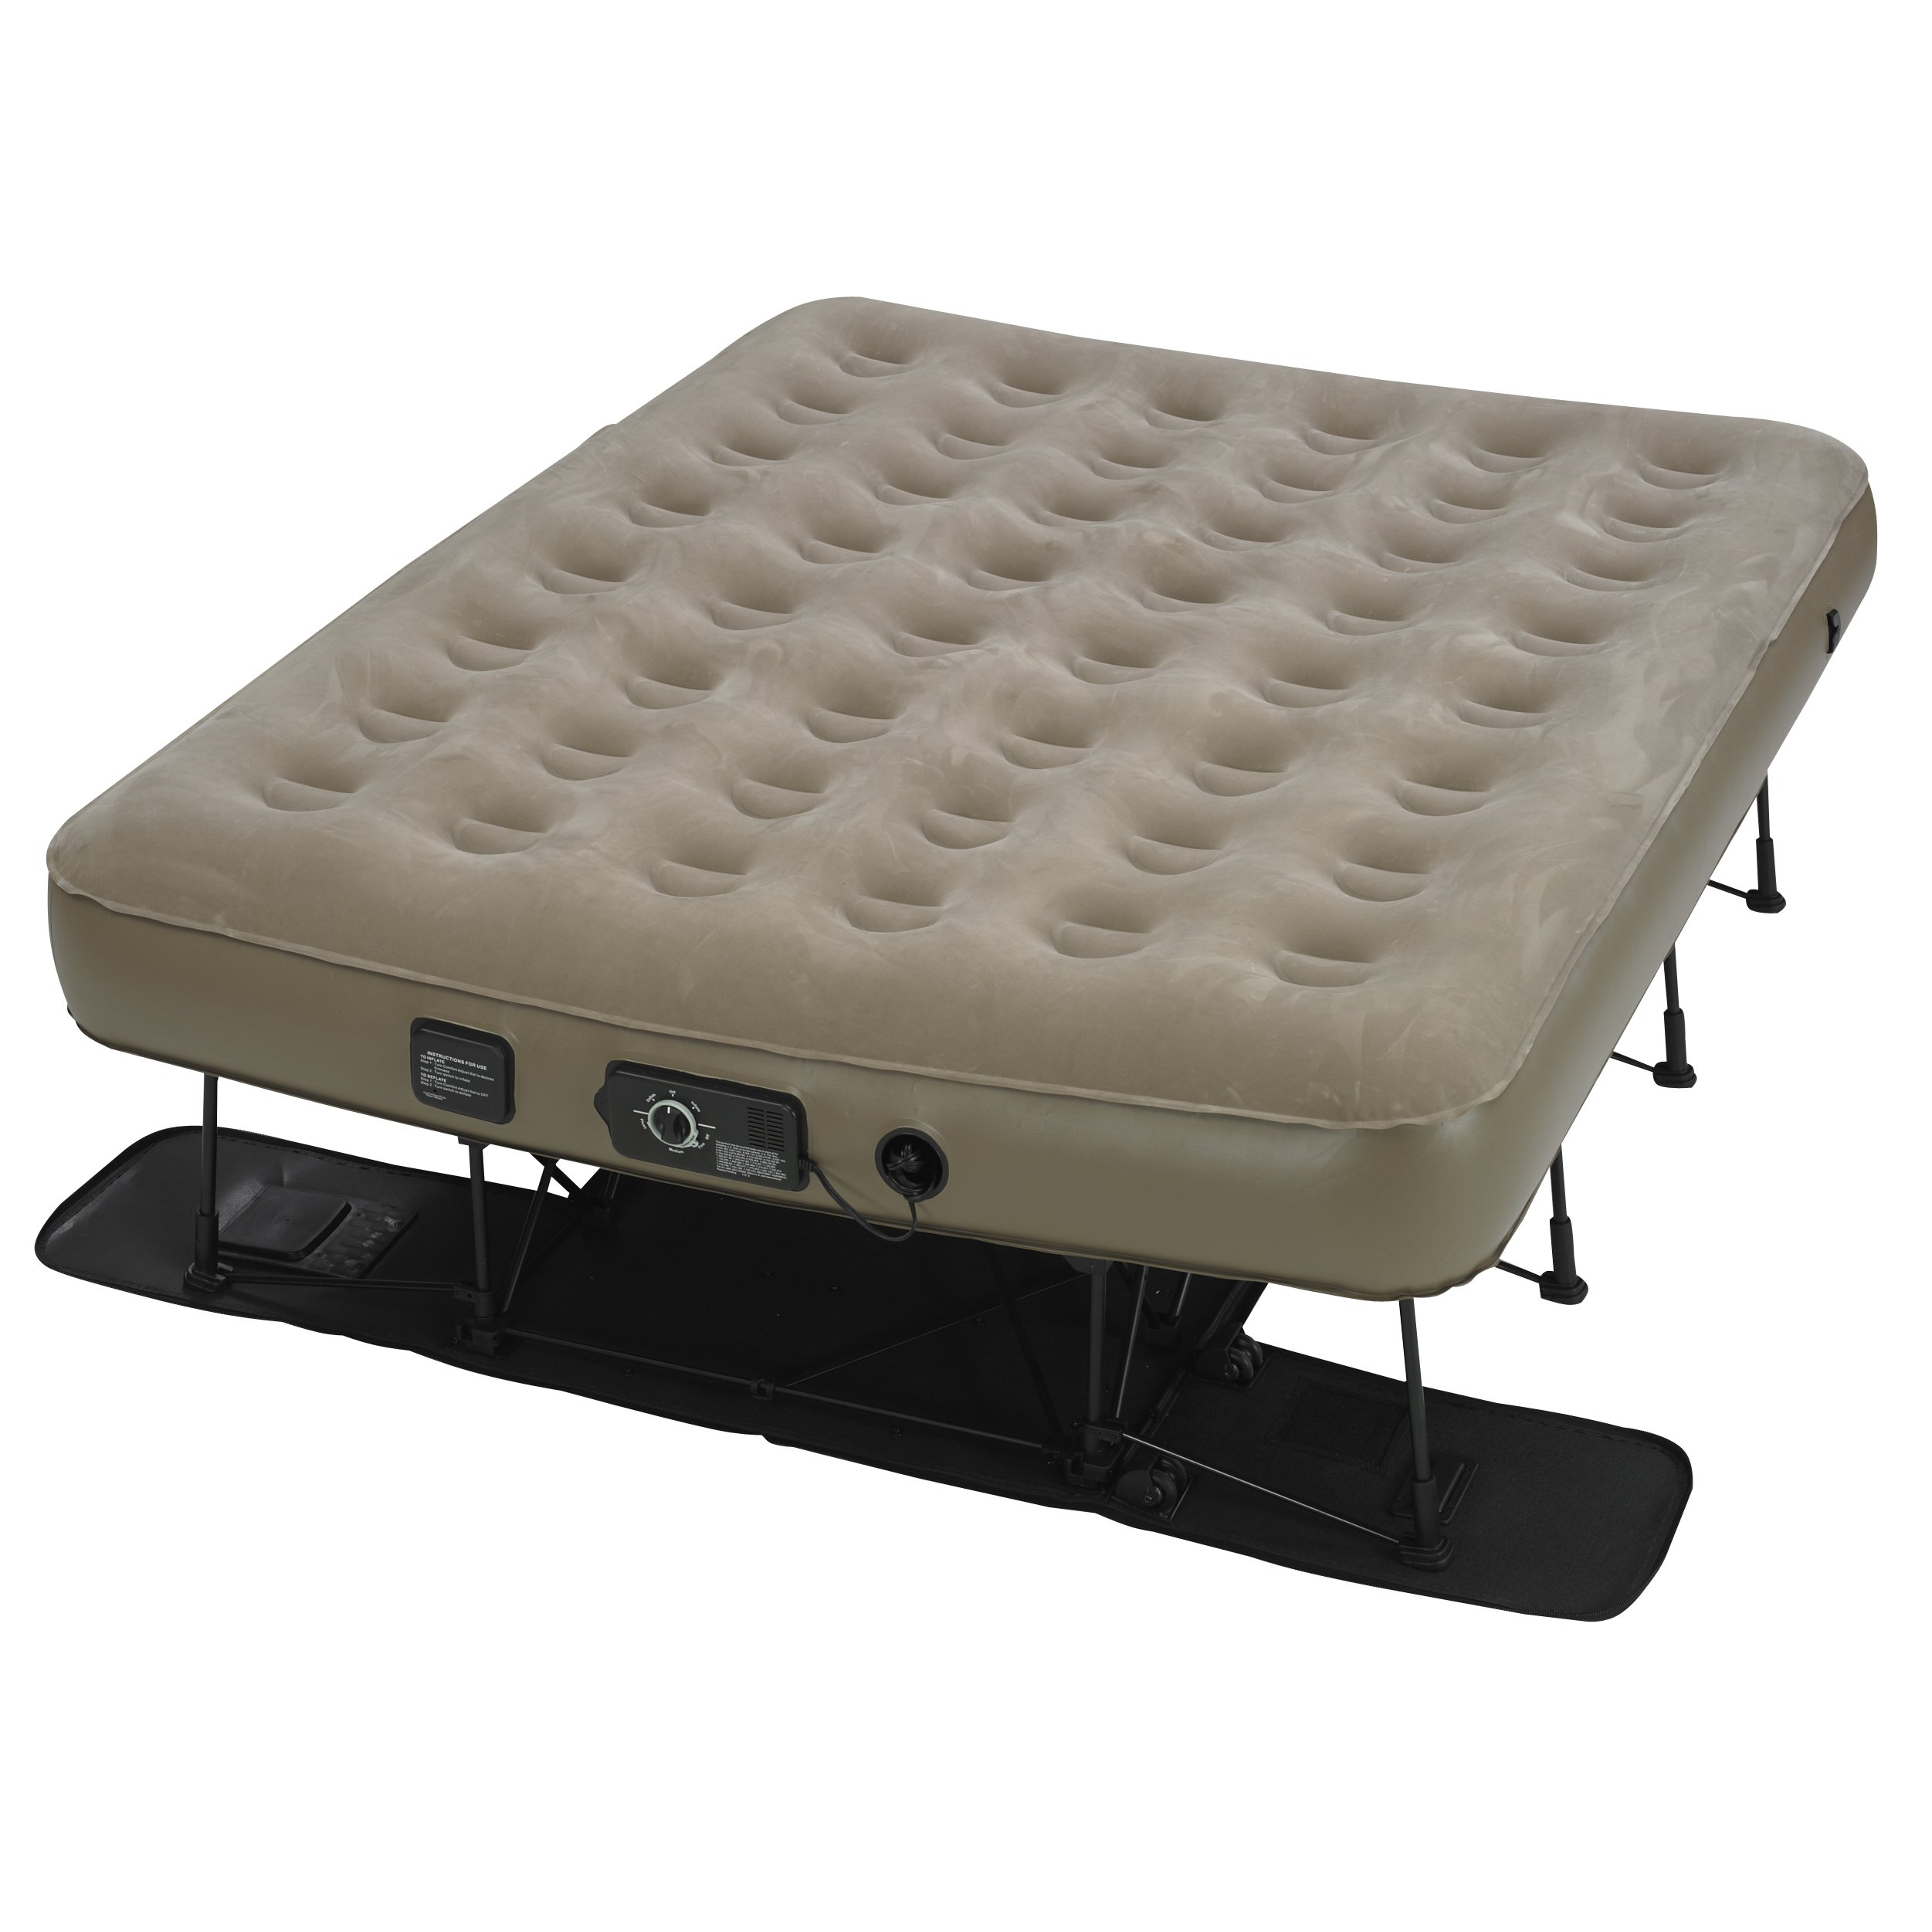 Insta-Bed Ez Queen Raised Air Mattress with NeverFlat - Tan by Insta-Bed